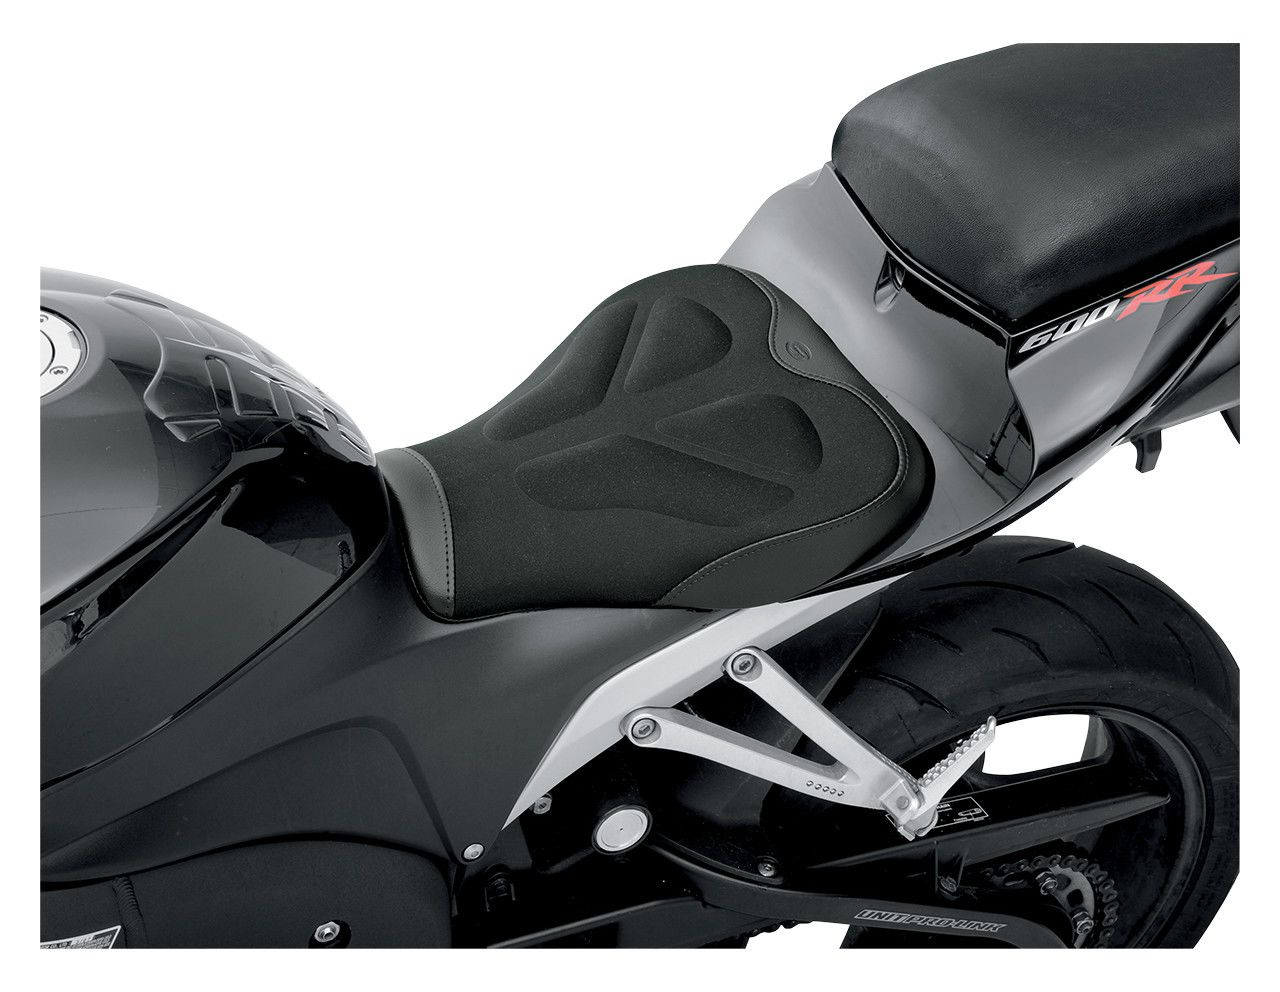 Saddlemen Gel Channel Tech Seat Honda Cbr600rr 2007 2015